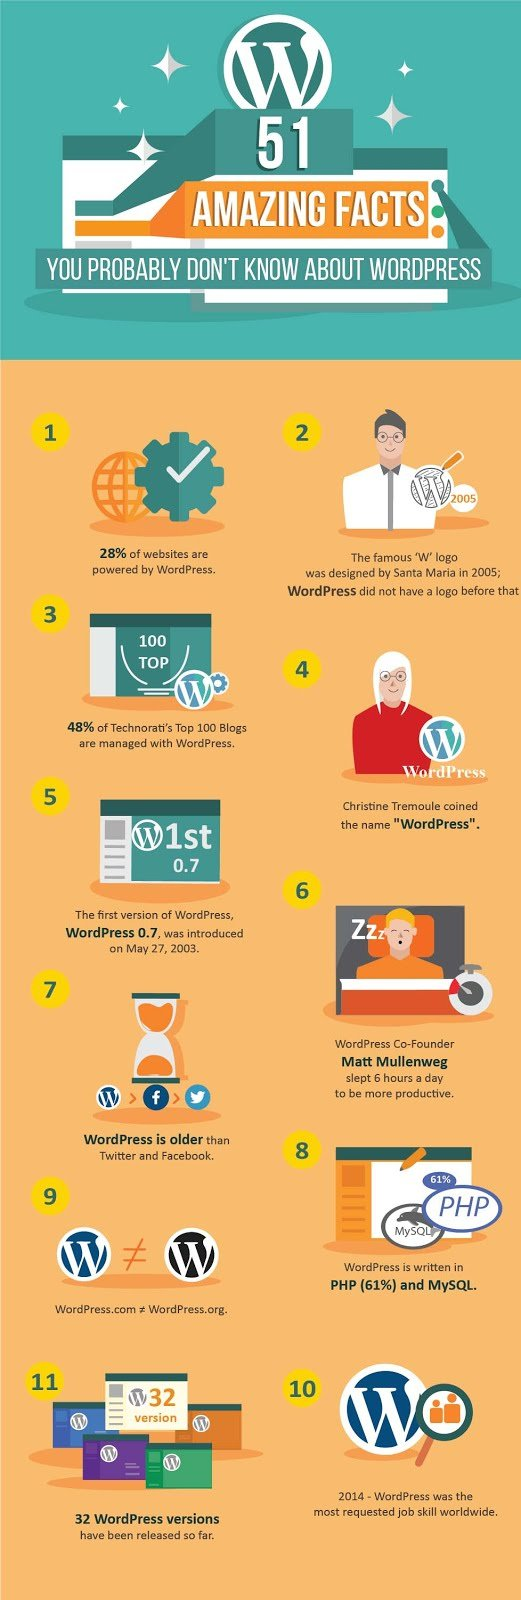 Amazing Facts You Don't Know About WordPress